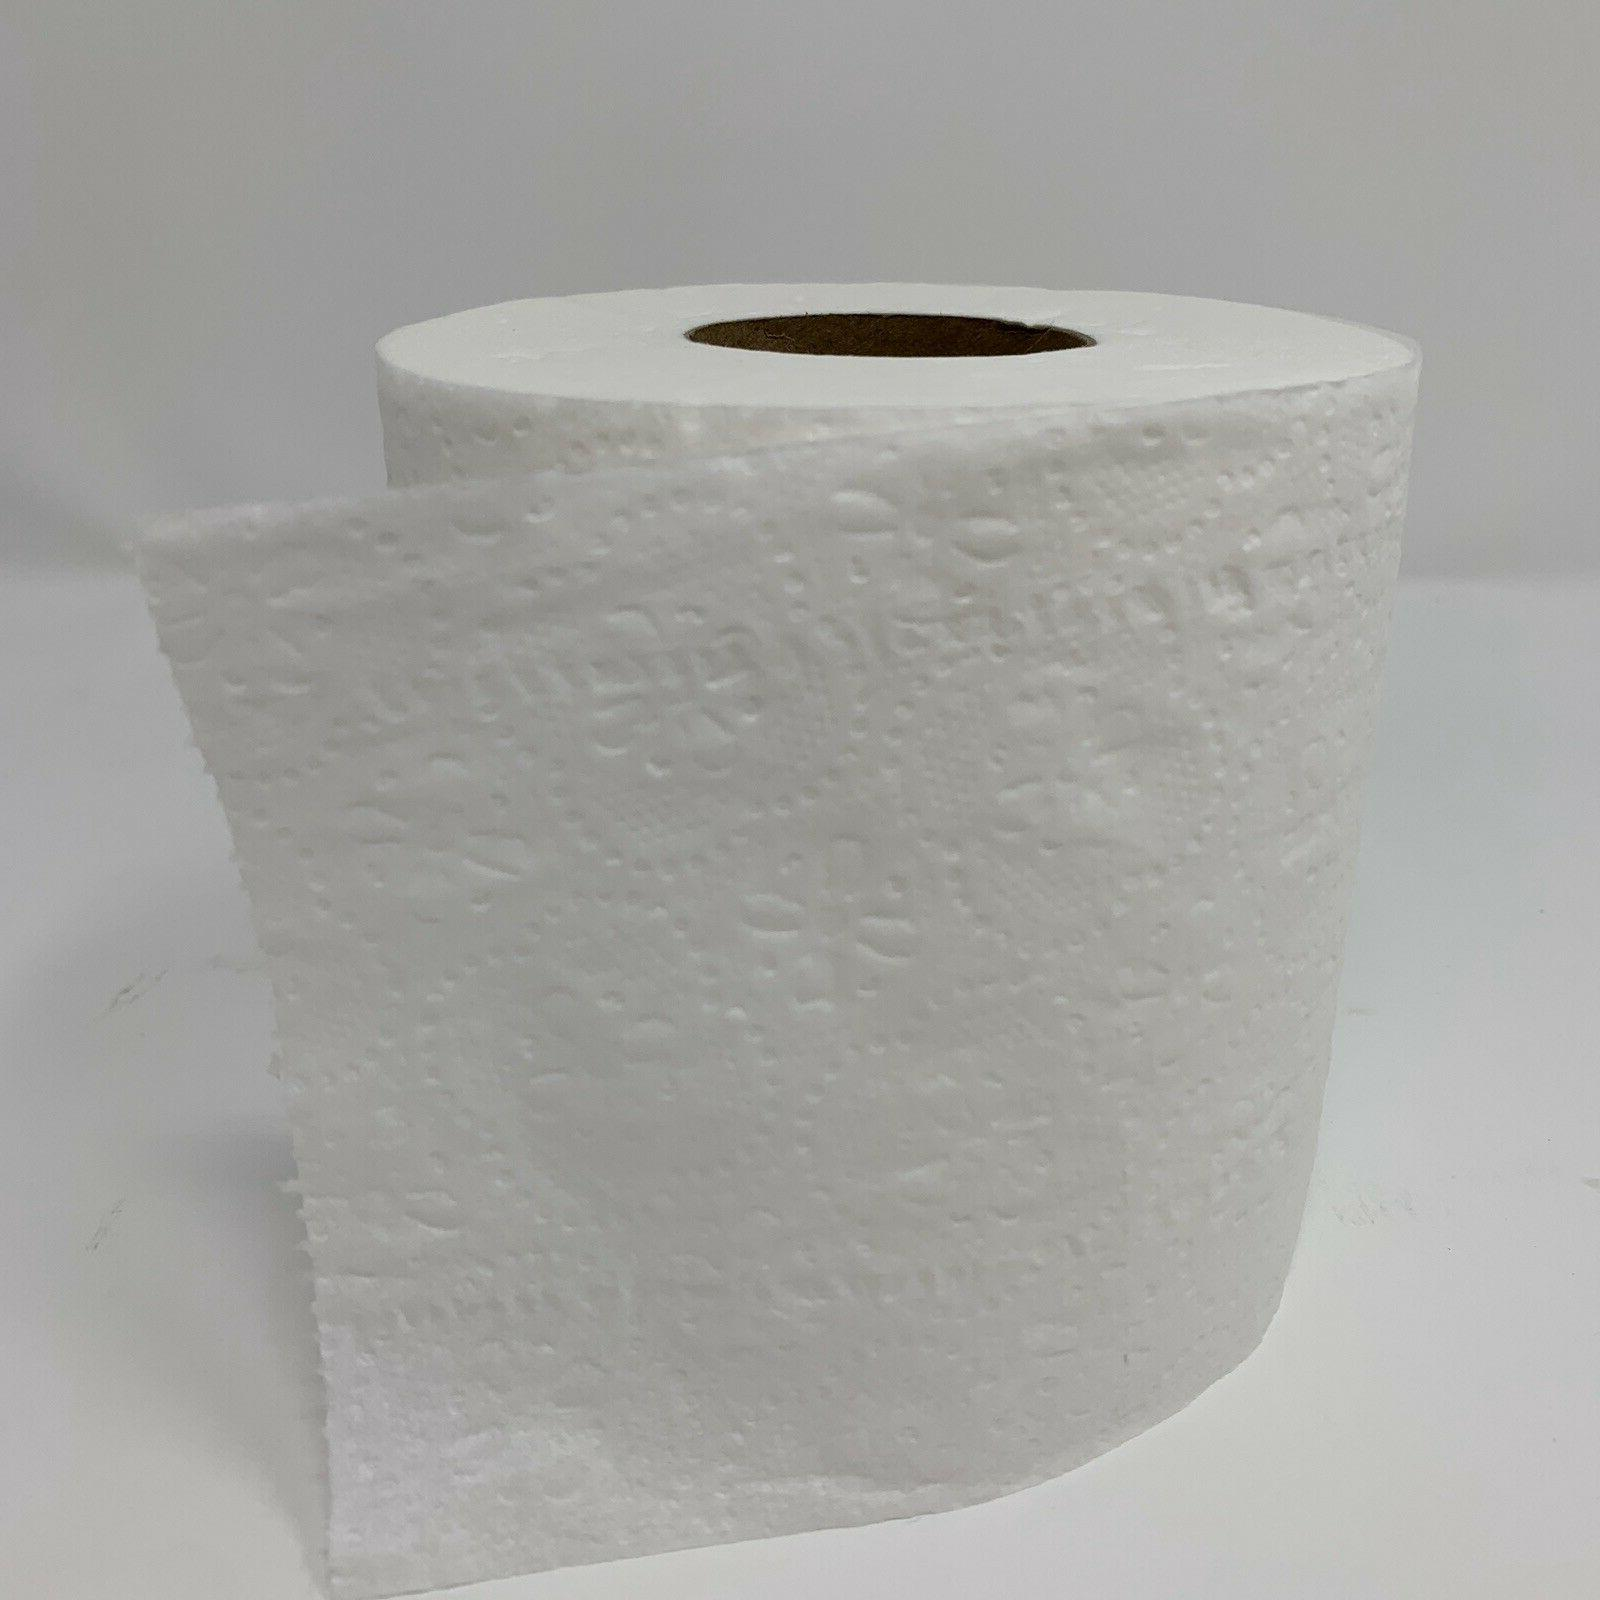 Toilet Paper Tissue 5 Rolls - Extra Soft 2 Ply FAST SHIPPING